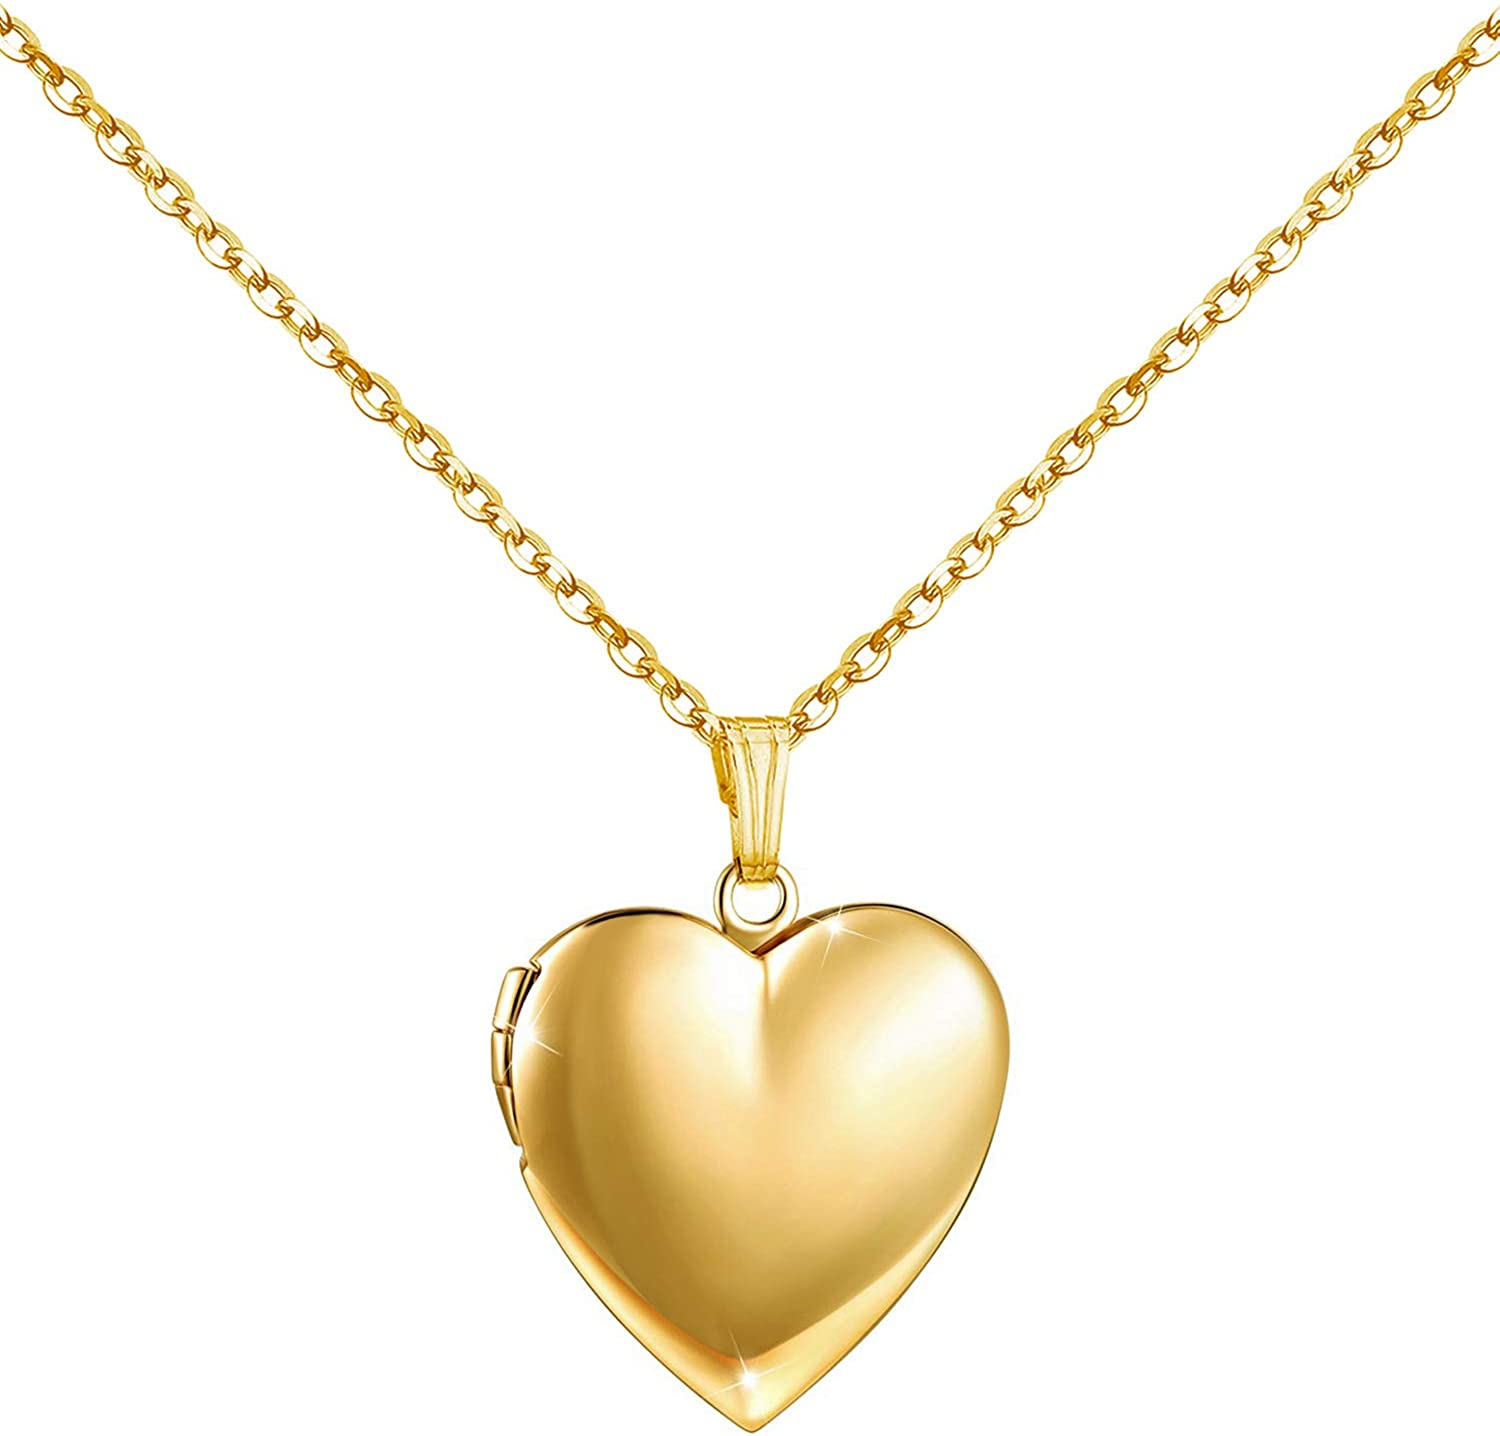 Amazon Com Youfeng Love Heart Locket Necklace That Holds Pictures Polished Lockets Necklaces Birthday Gifts For Girls Boys Heart Gold Locket Jewelry